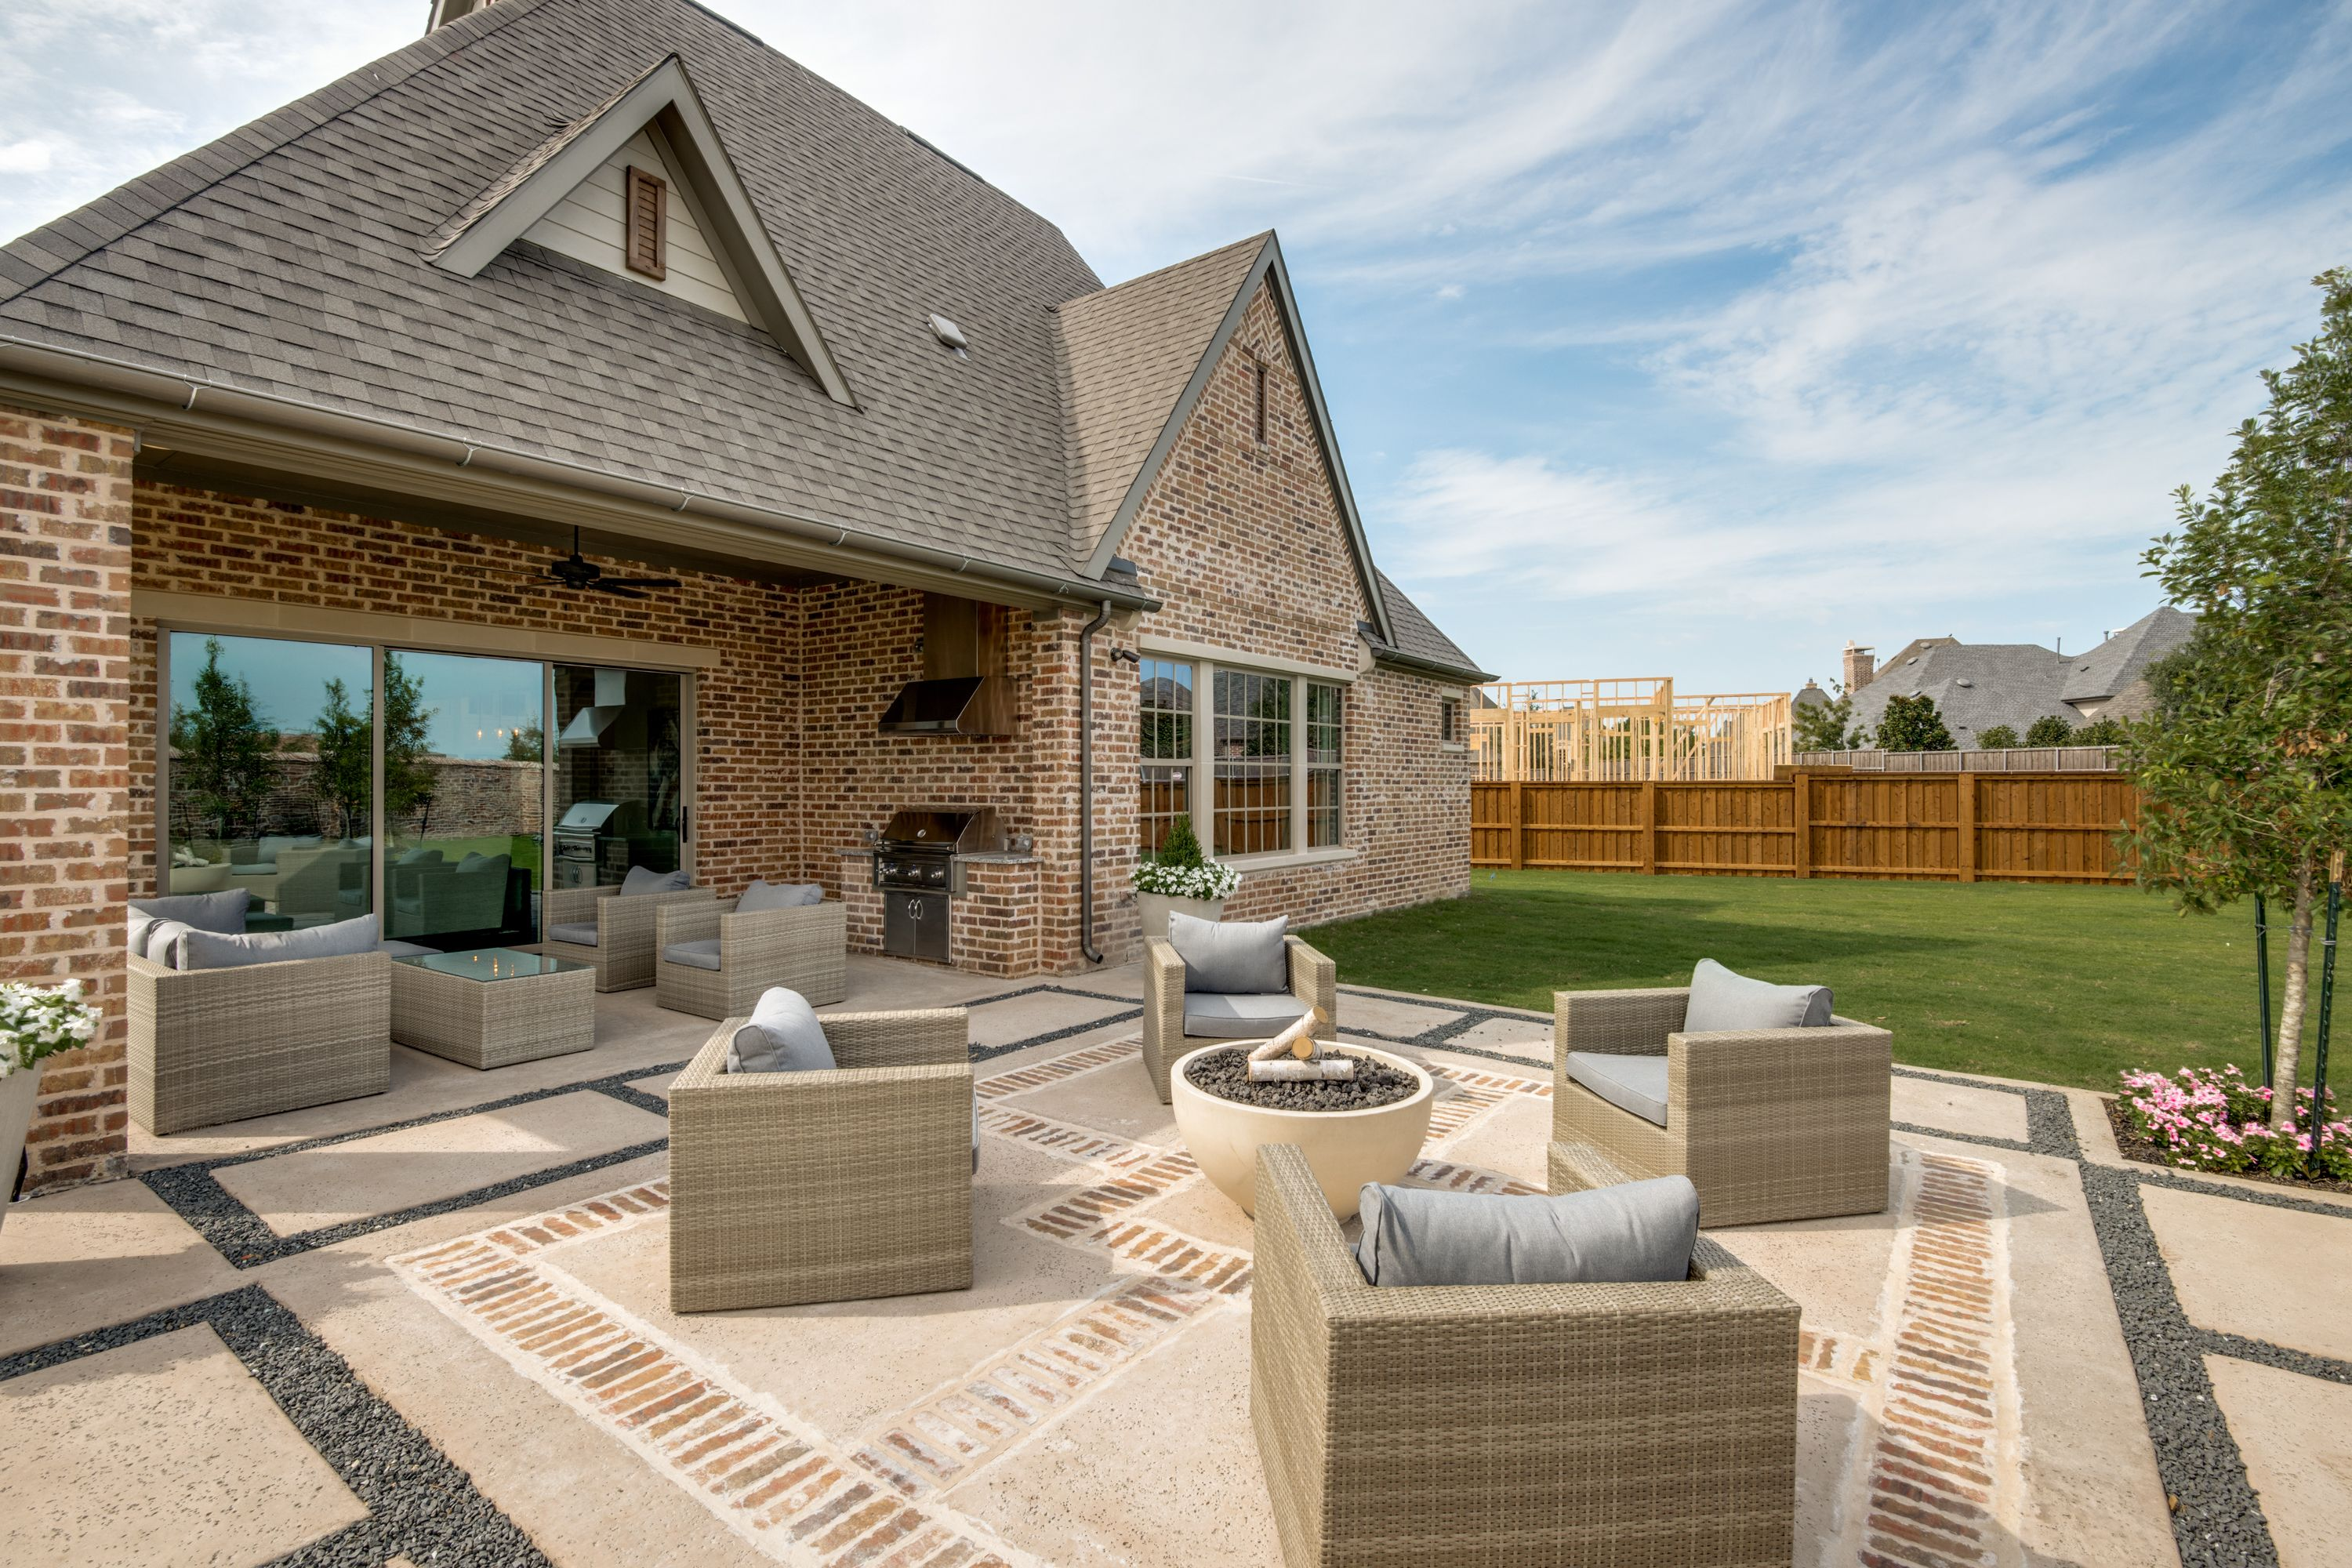 Cambridge Homes Is An Established And Respected Homebuilder, Offering A  Wide Range Of Personalizable Floor